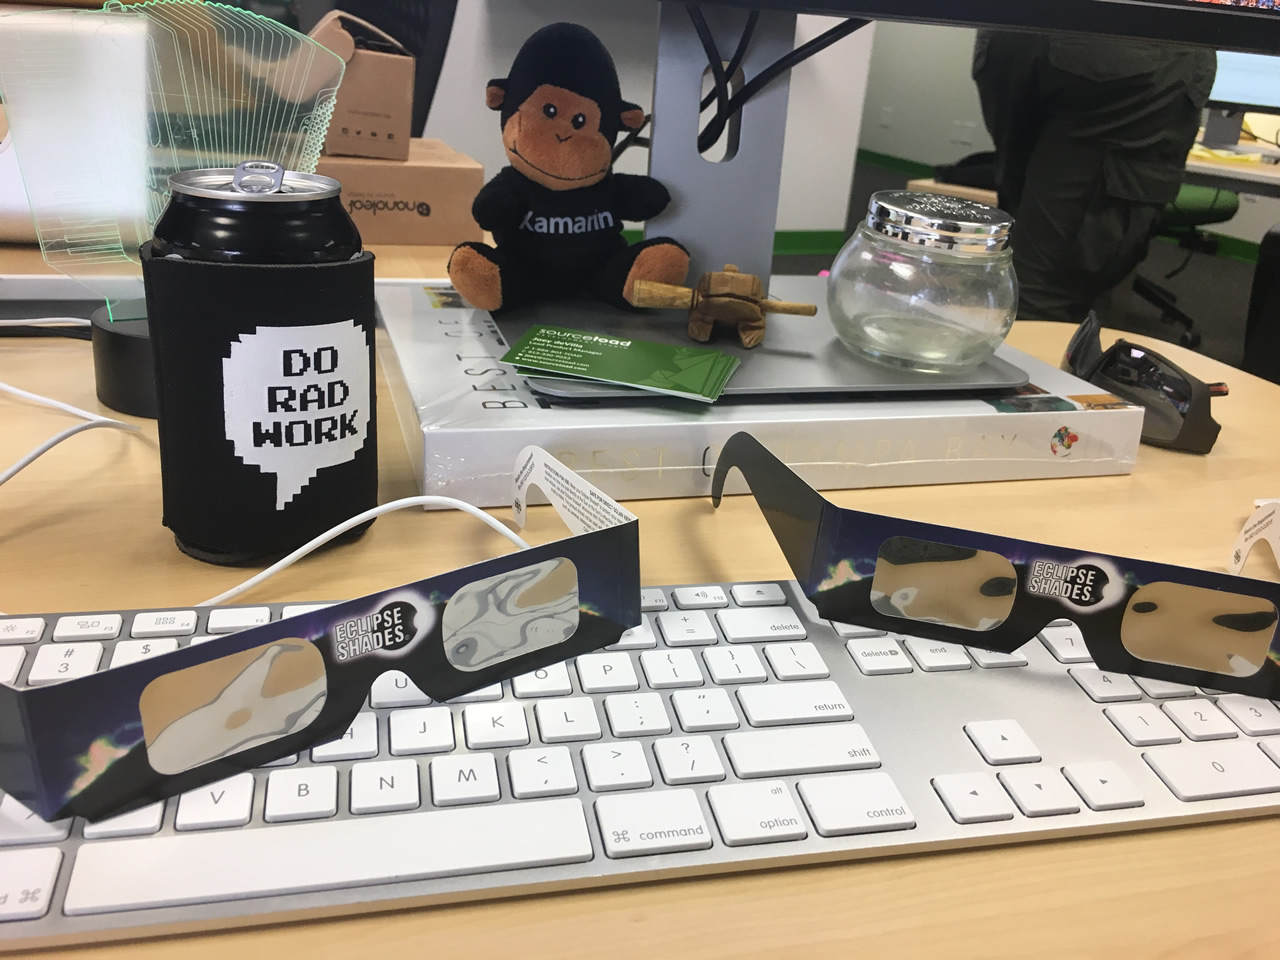 Joey deVilla's office desk, featuring solar eclipse glasses on his keyboard.